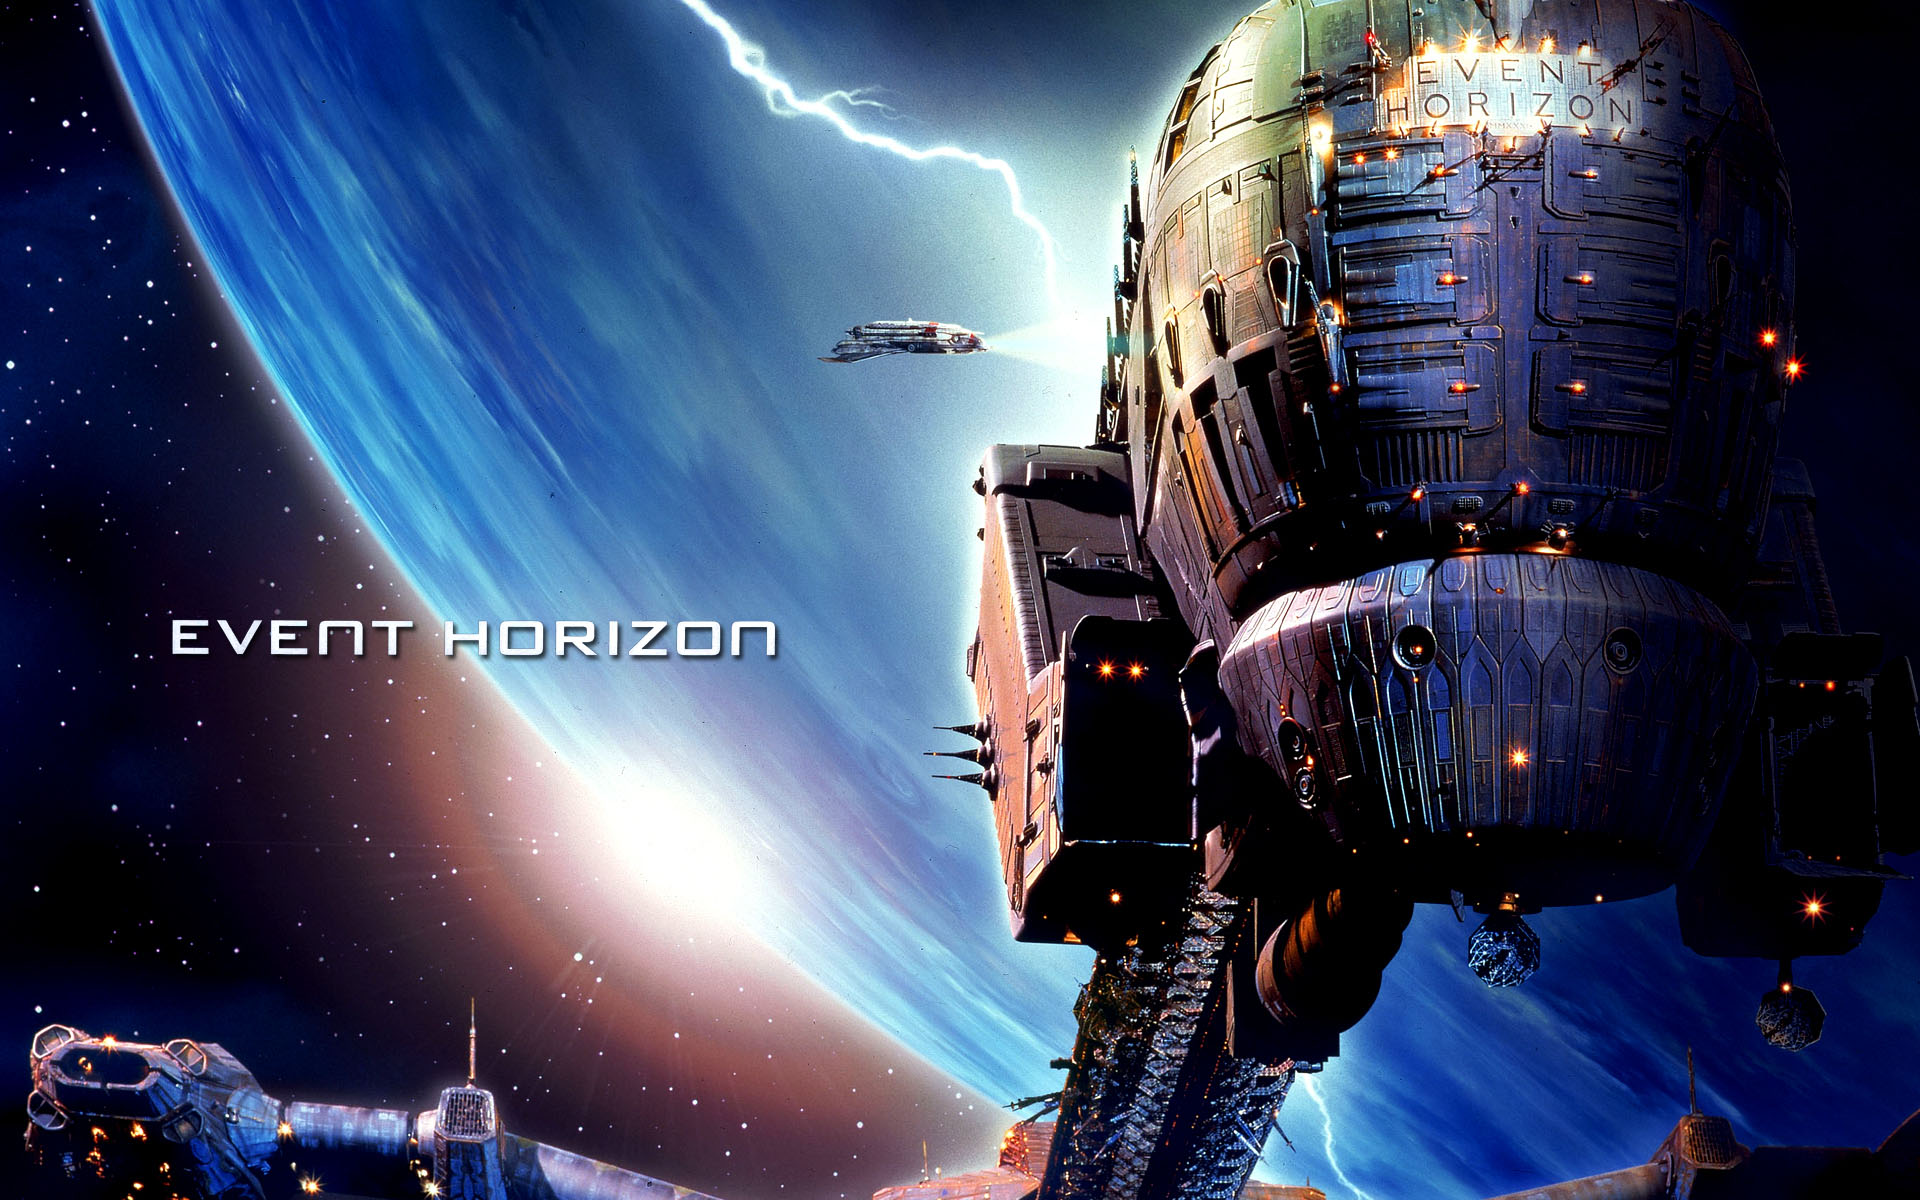 outer space Event Horizon HD Wallpaper